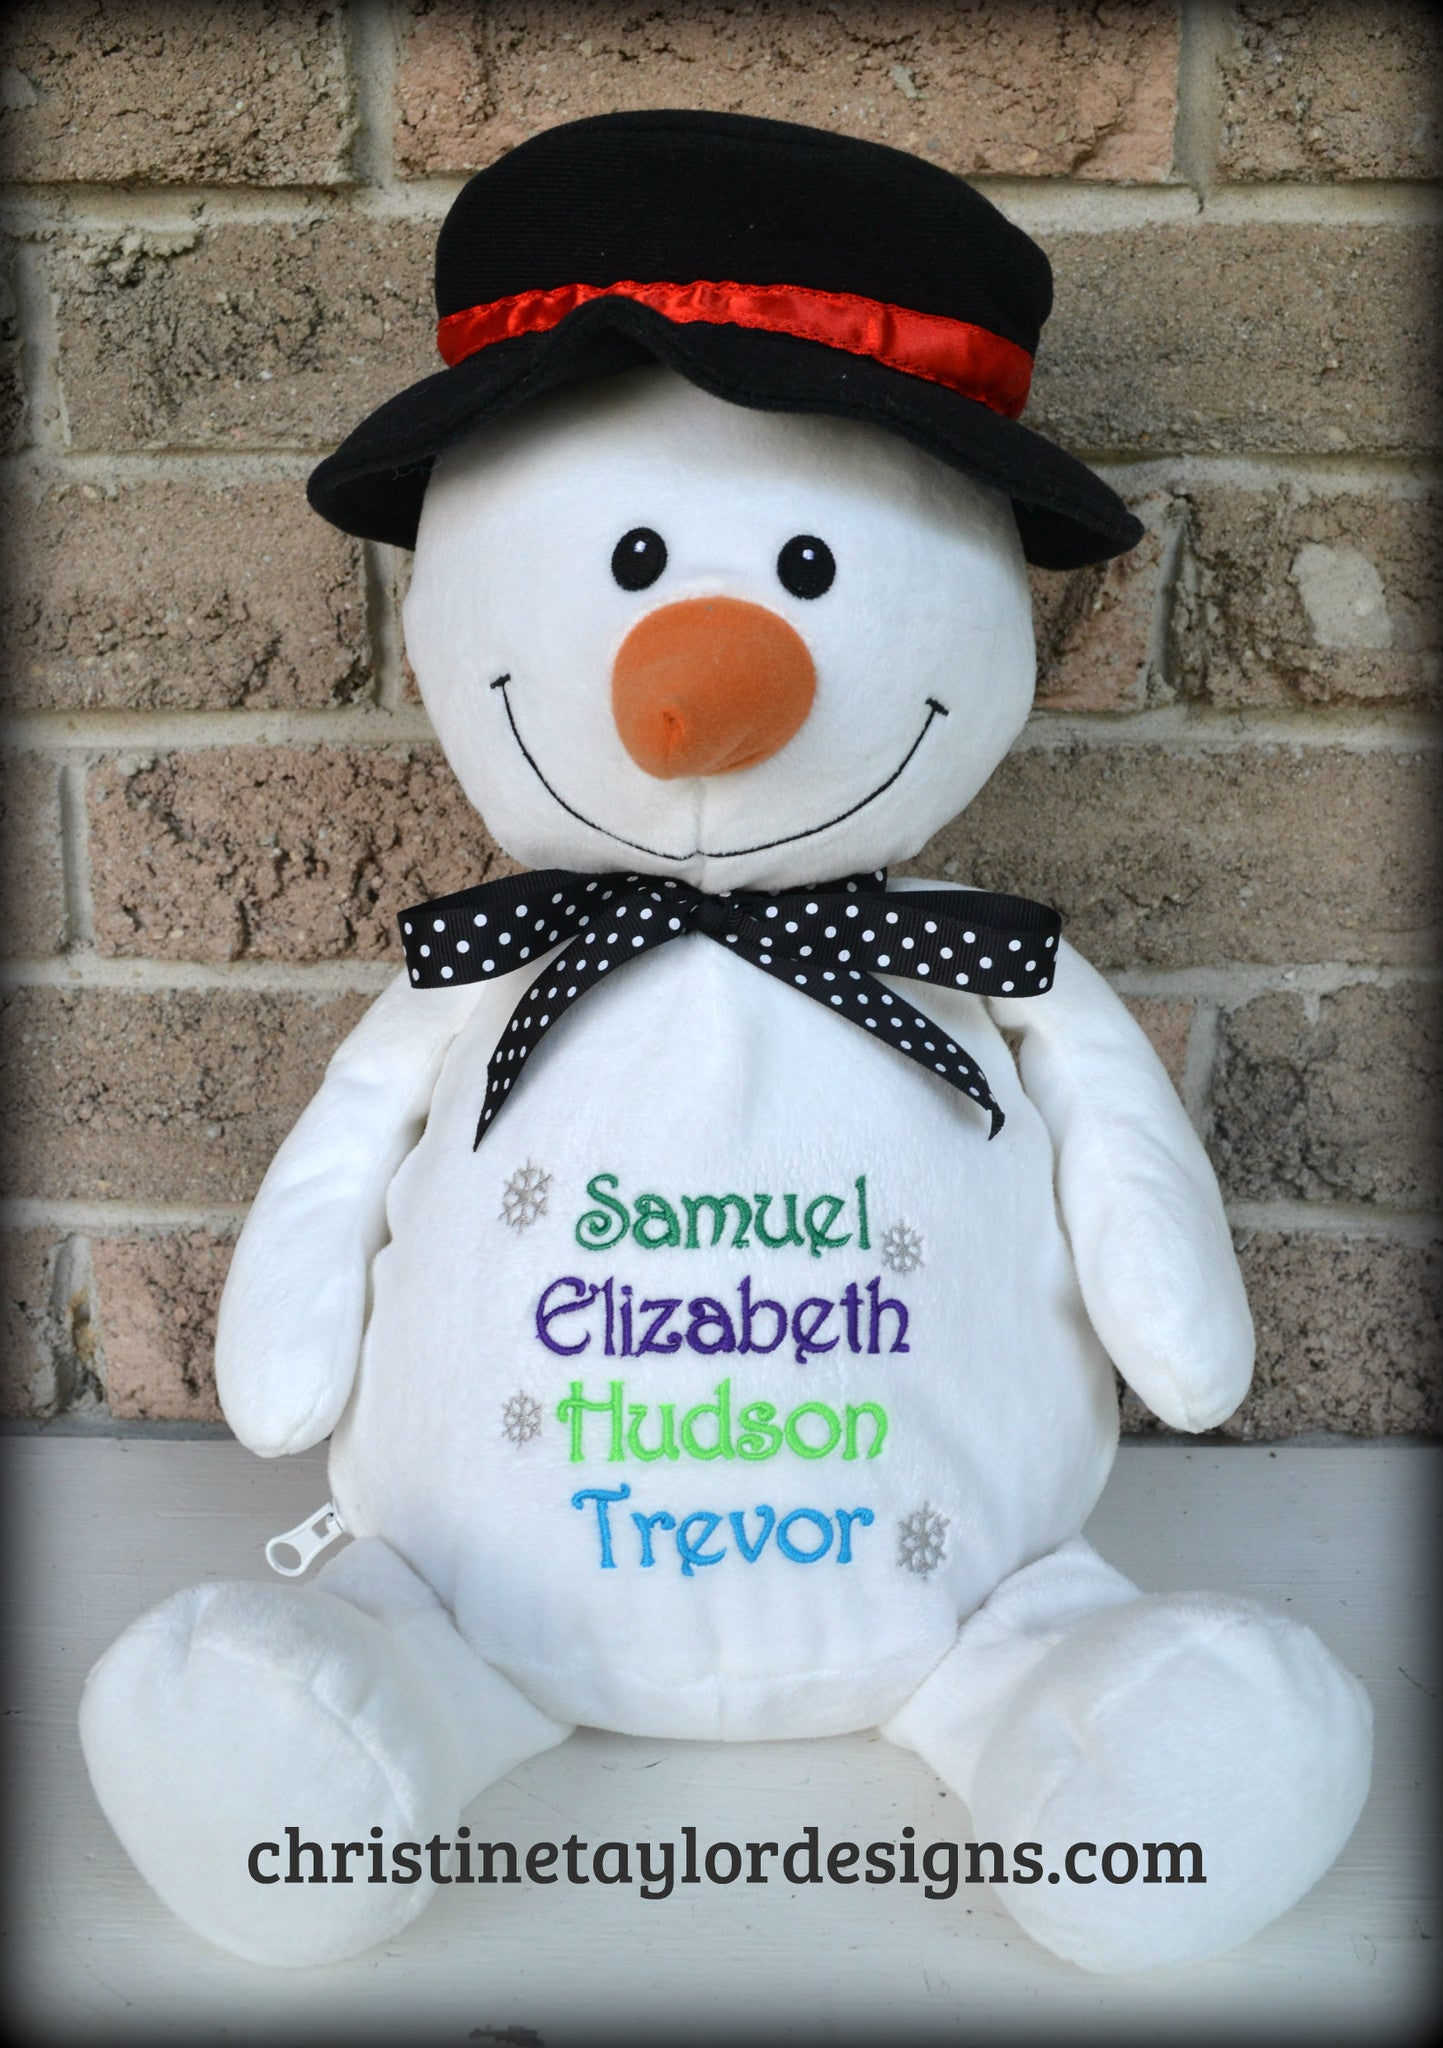 Holiday Snowman with top hat - Christine Taylor Designs